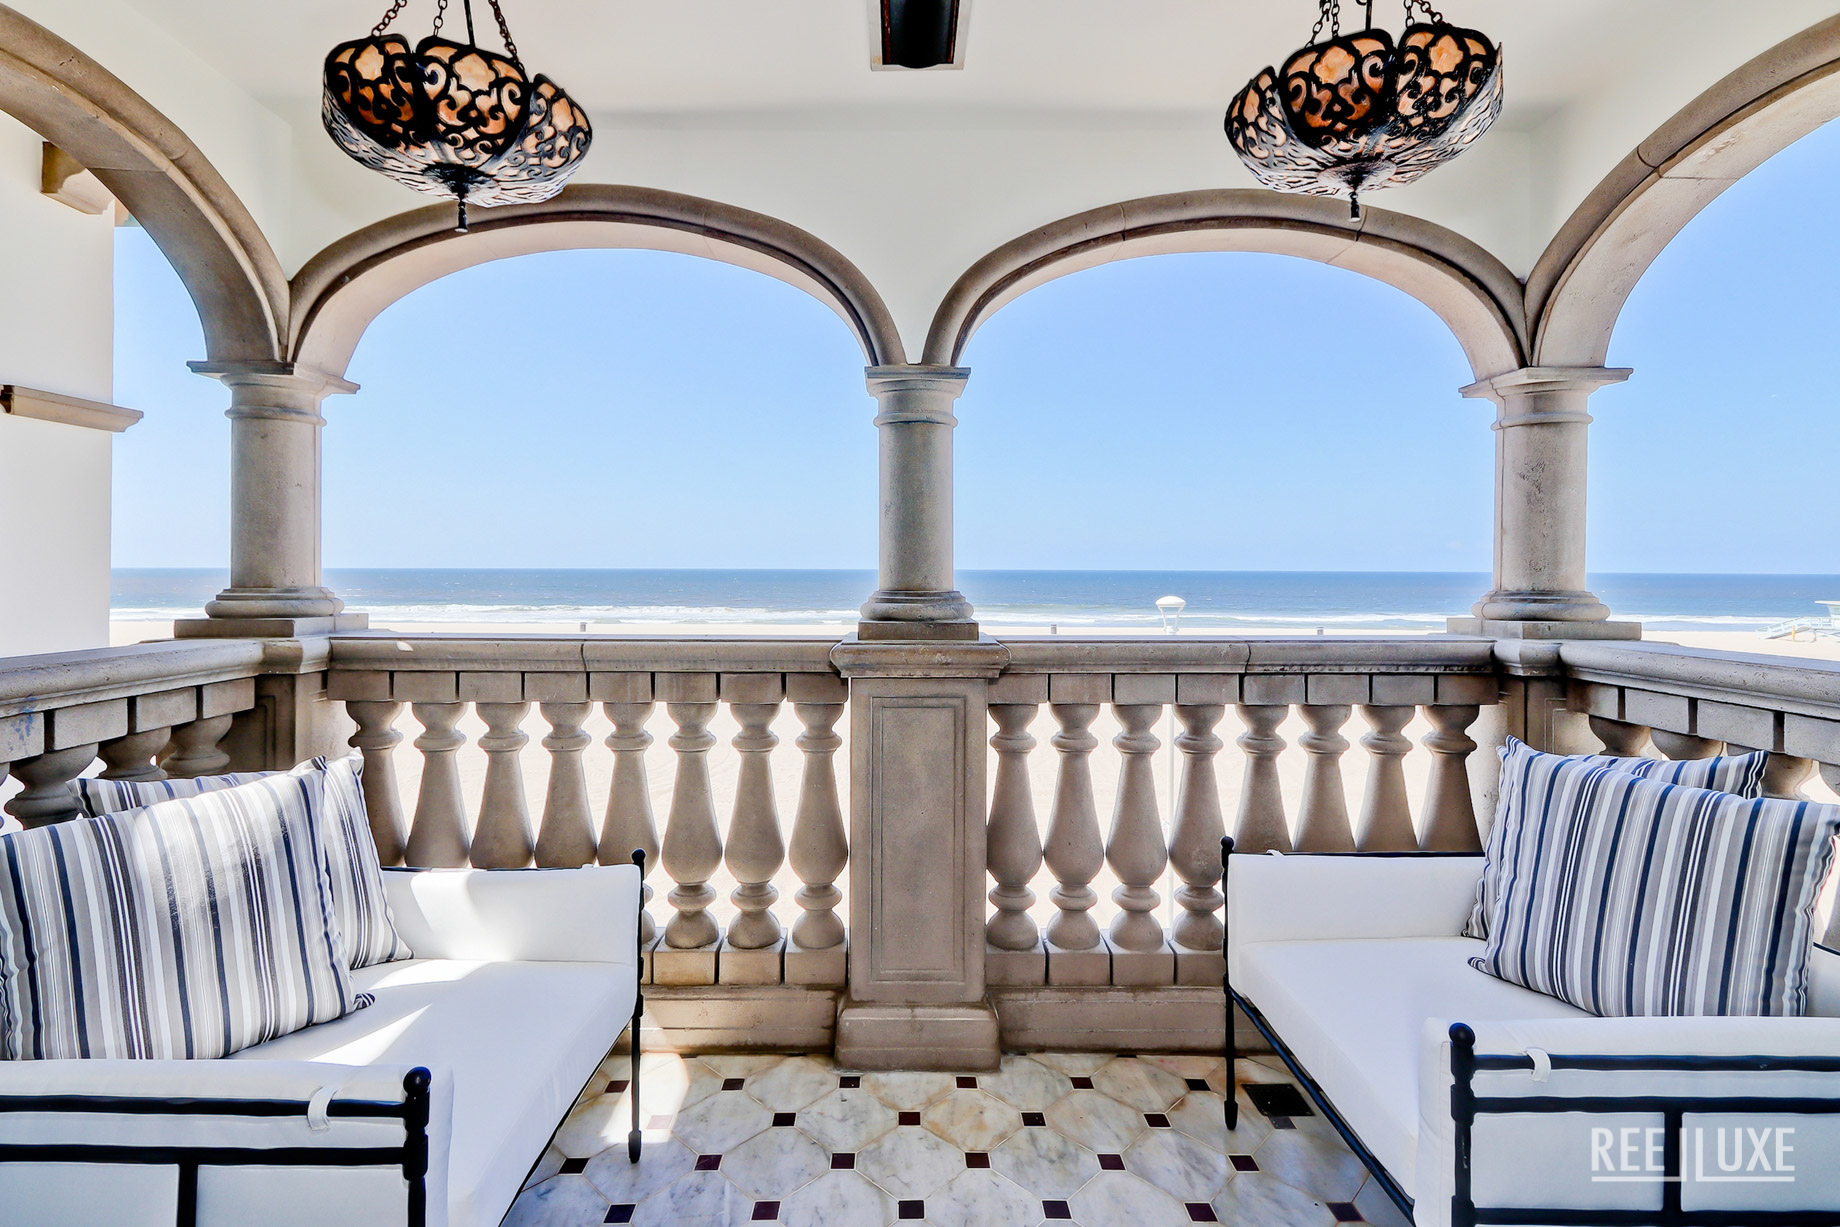 Oceanfront Luxury Exemplified - 2806 The Strand, Hermosa Beach, CA, USA - Master Balcony